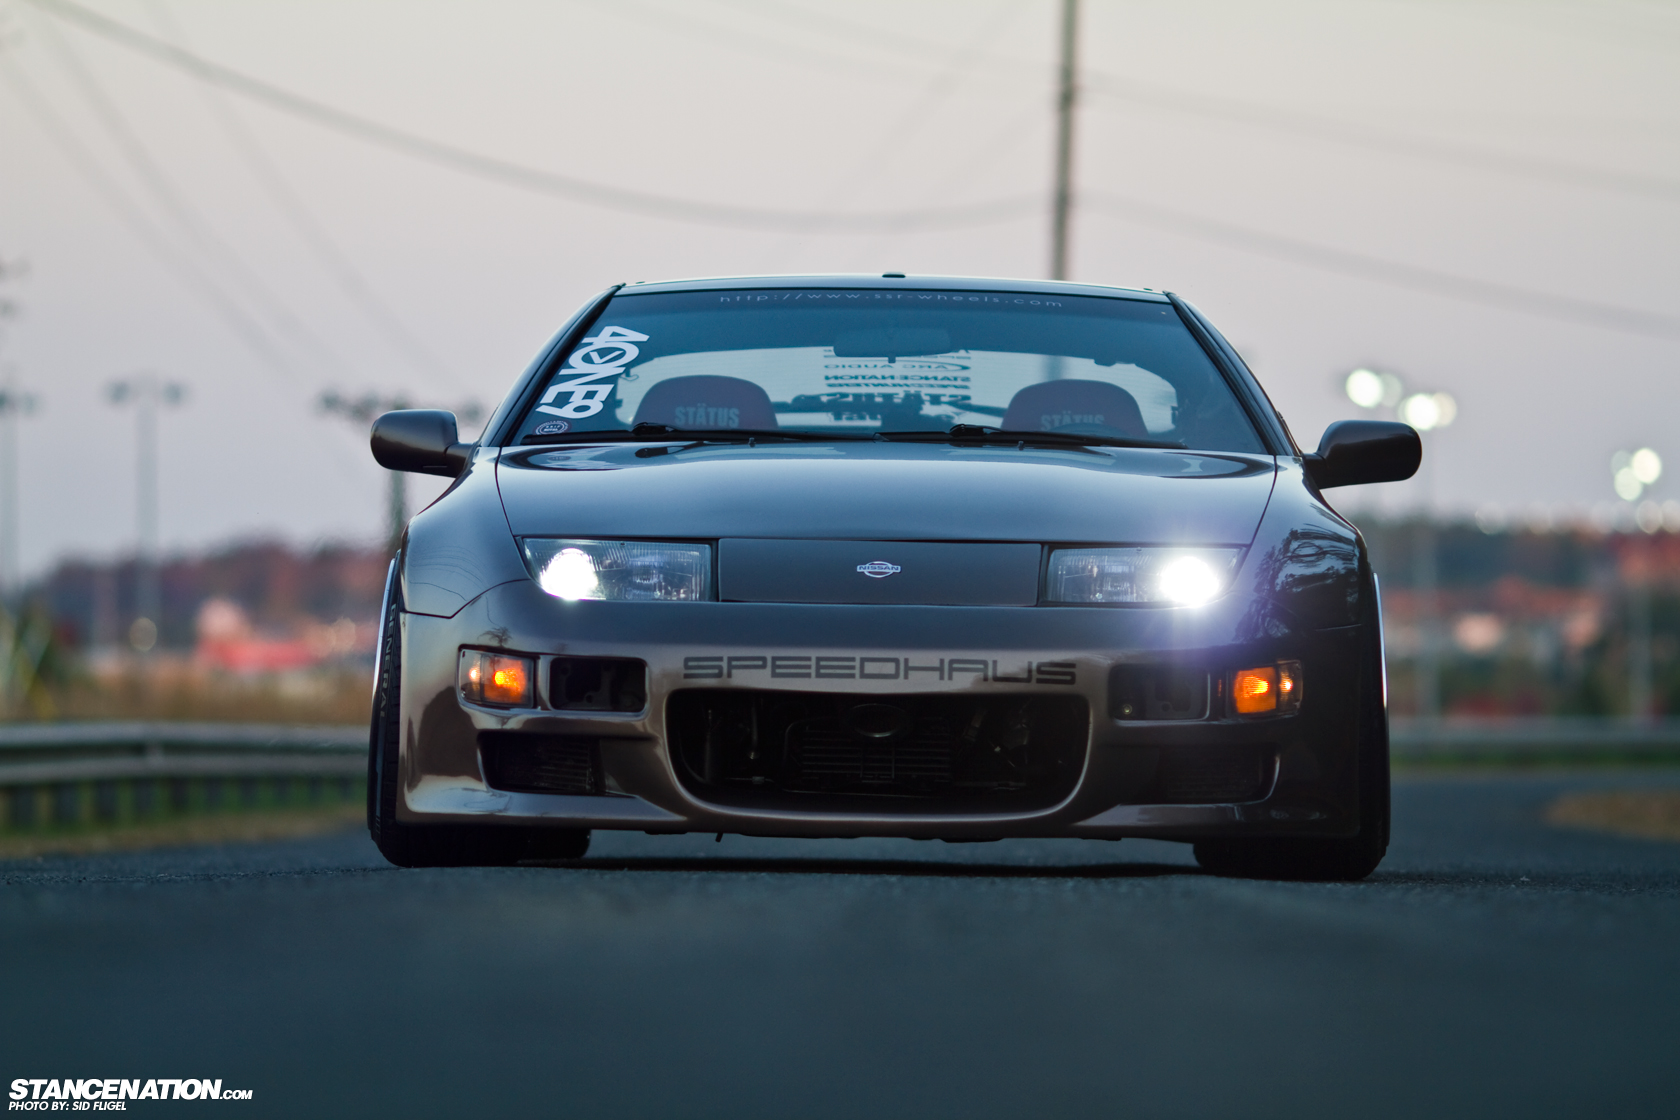 Form + Function // Steven's stunning Nissan 300ZX